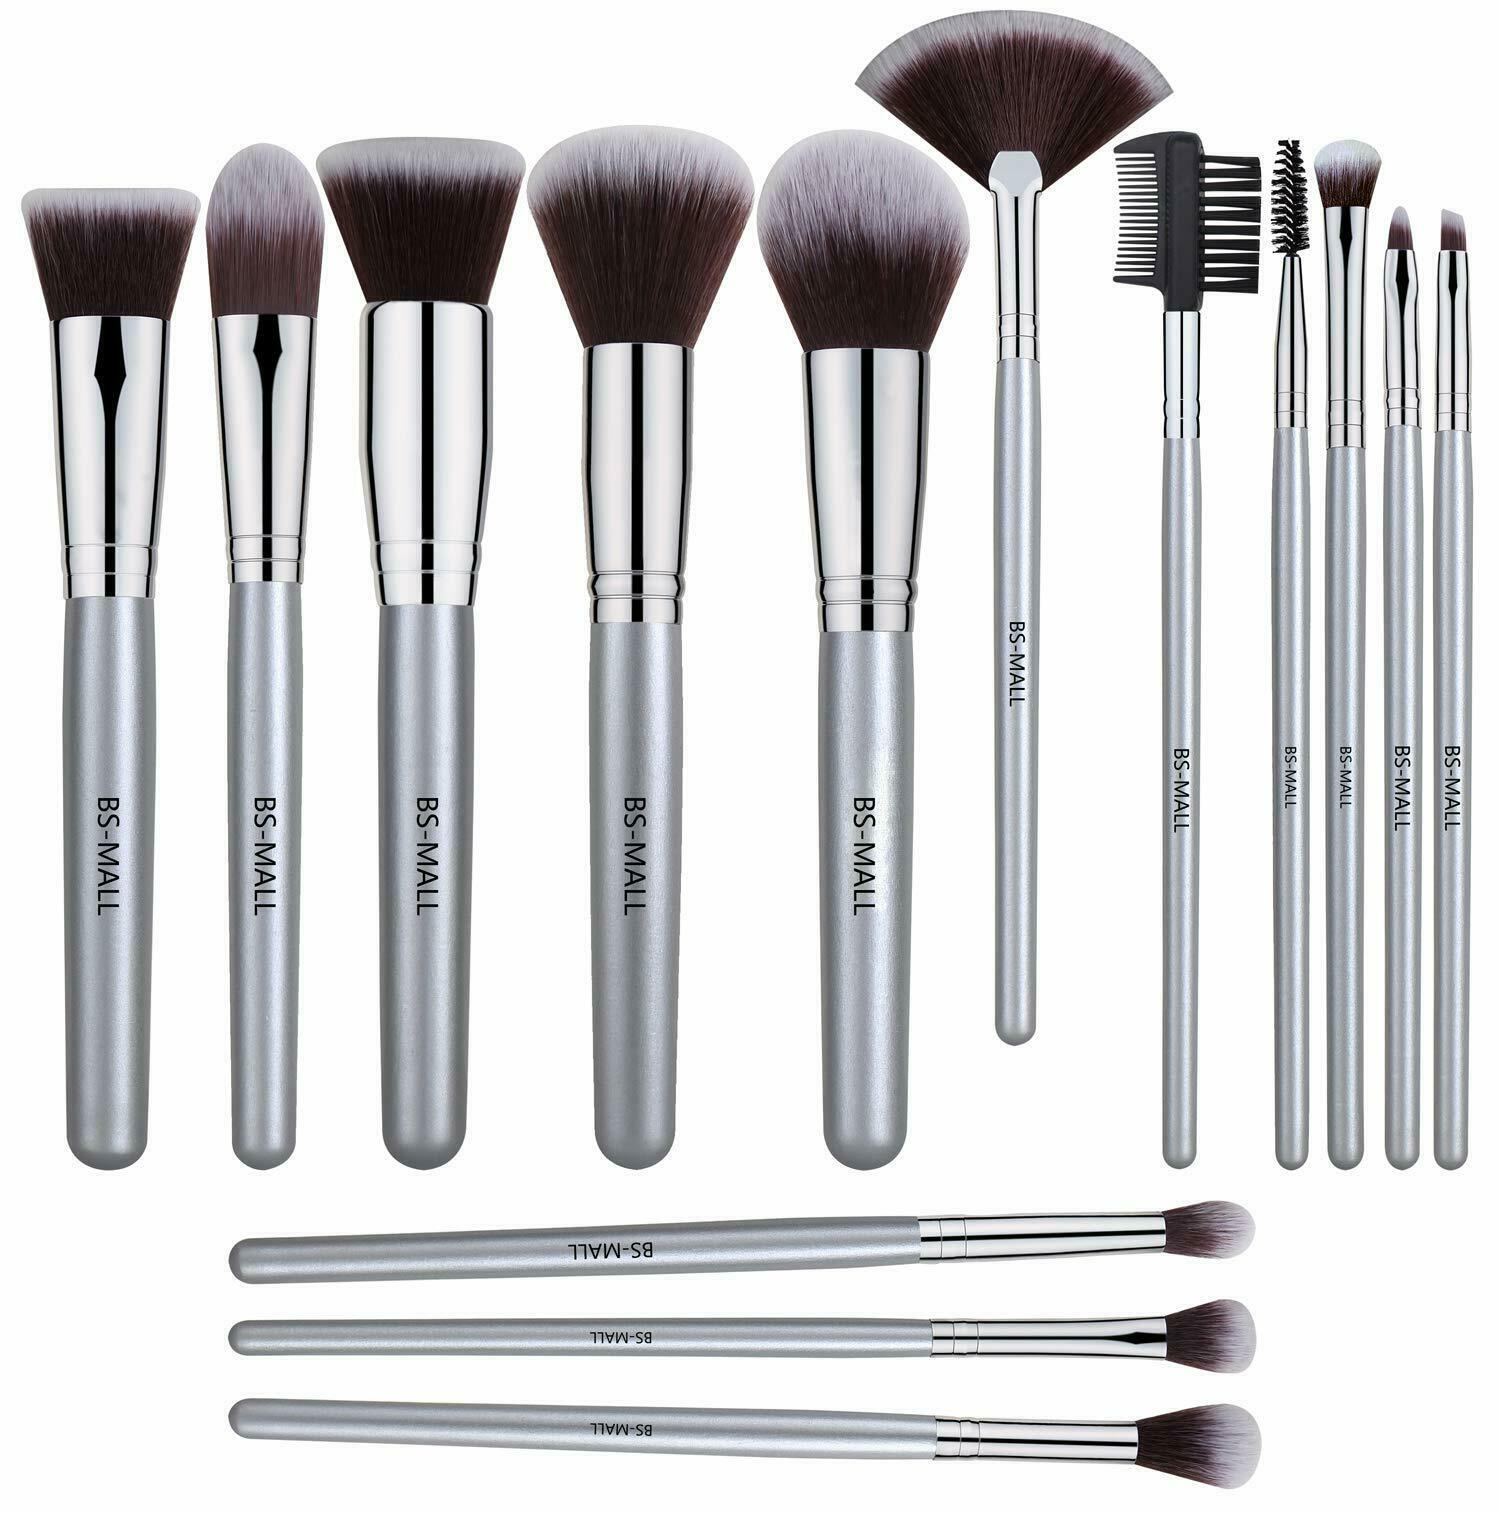 Morphe-style Professional Cosmetic Makeup Brush Set Eyeshado